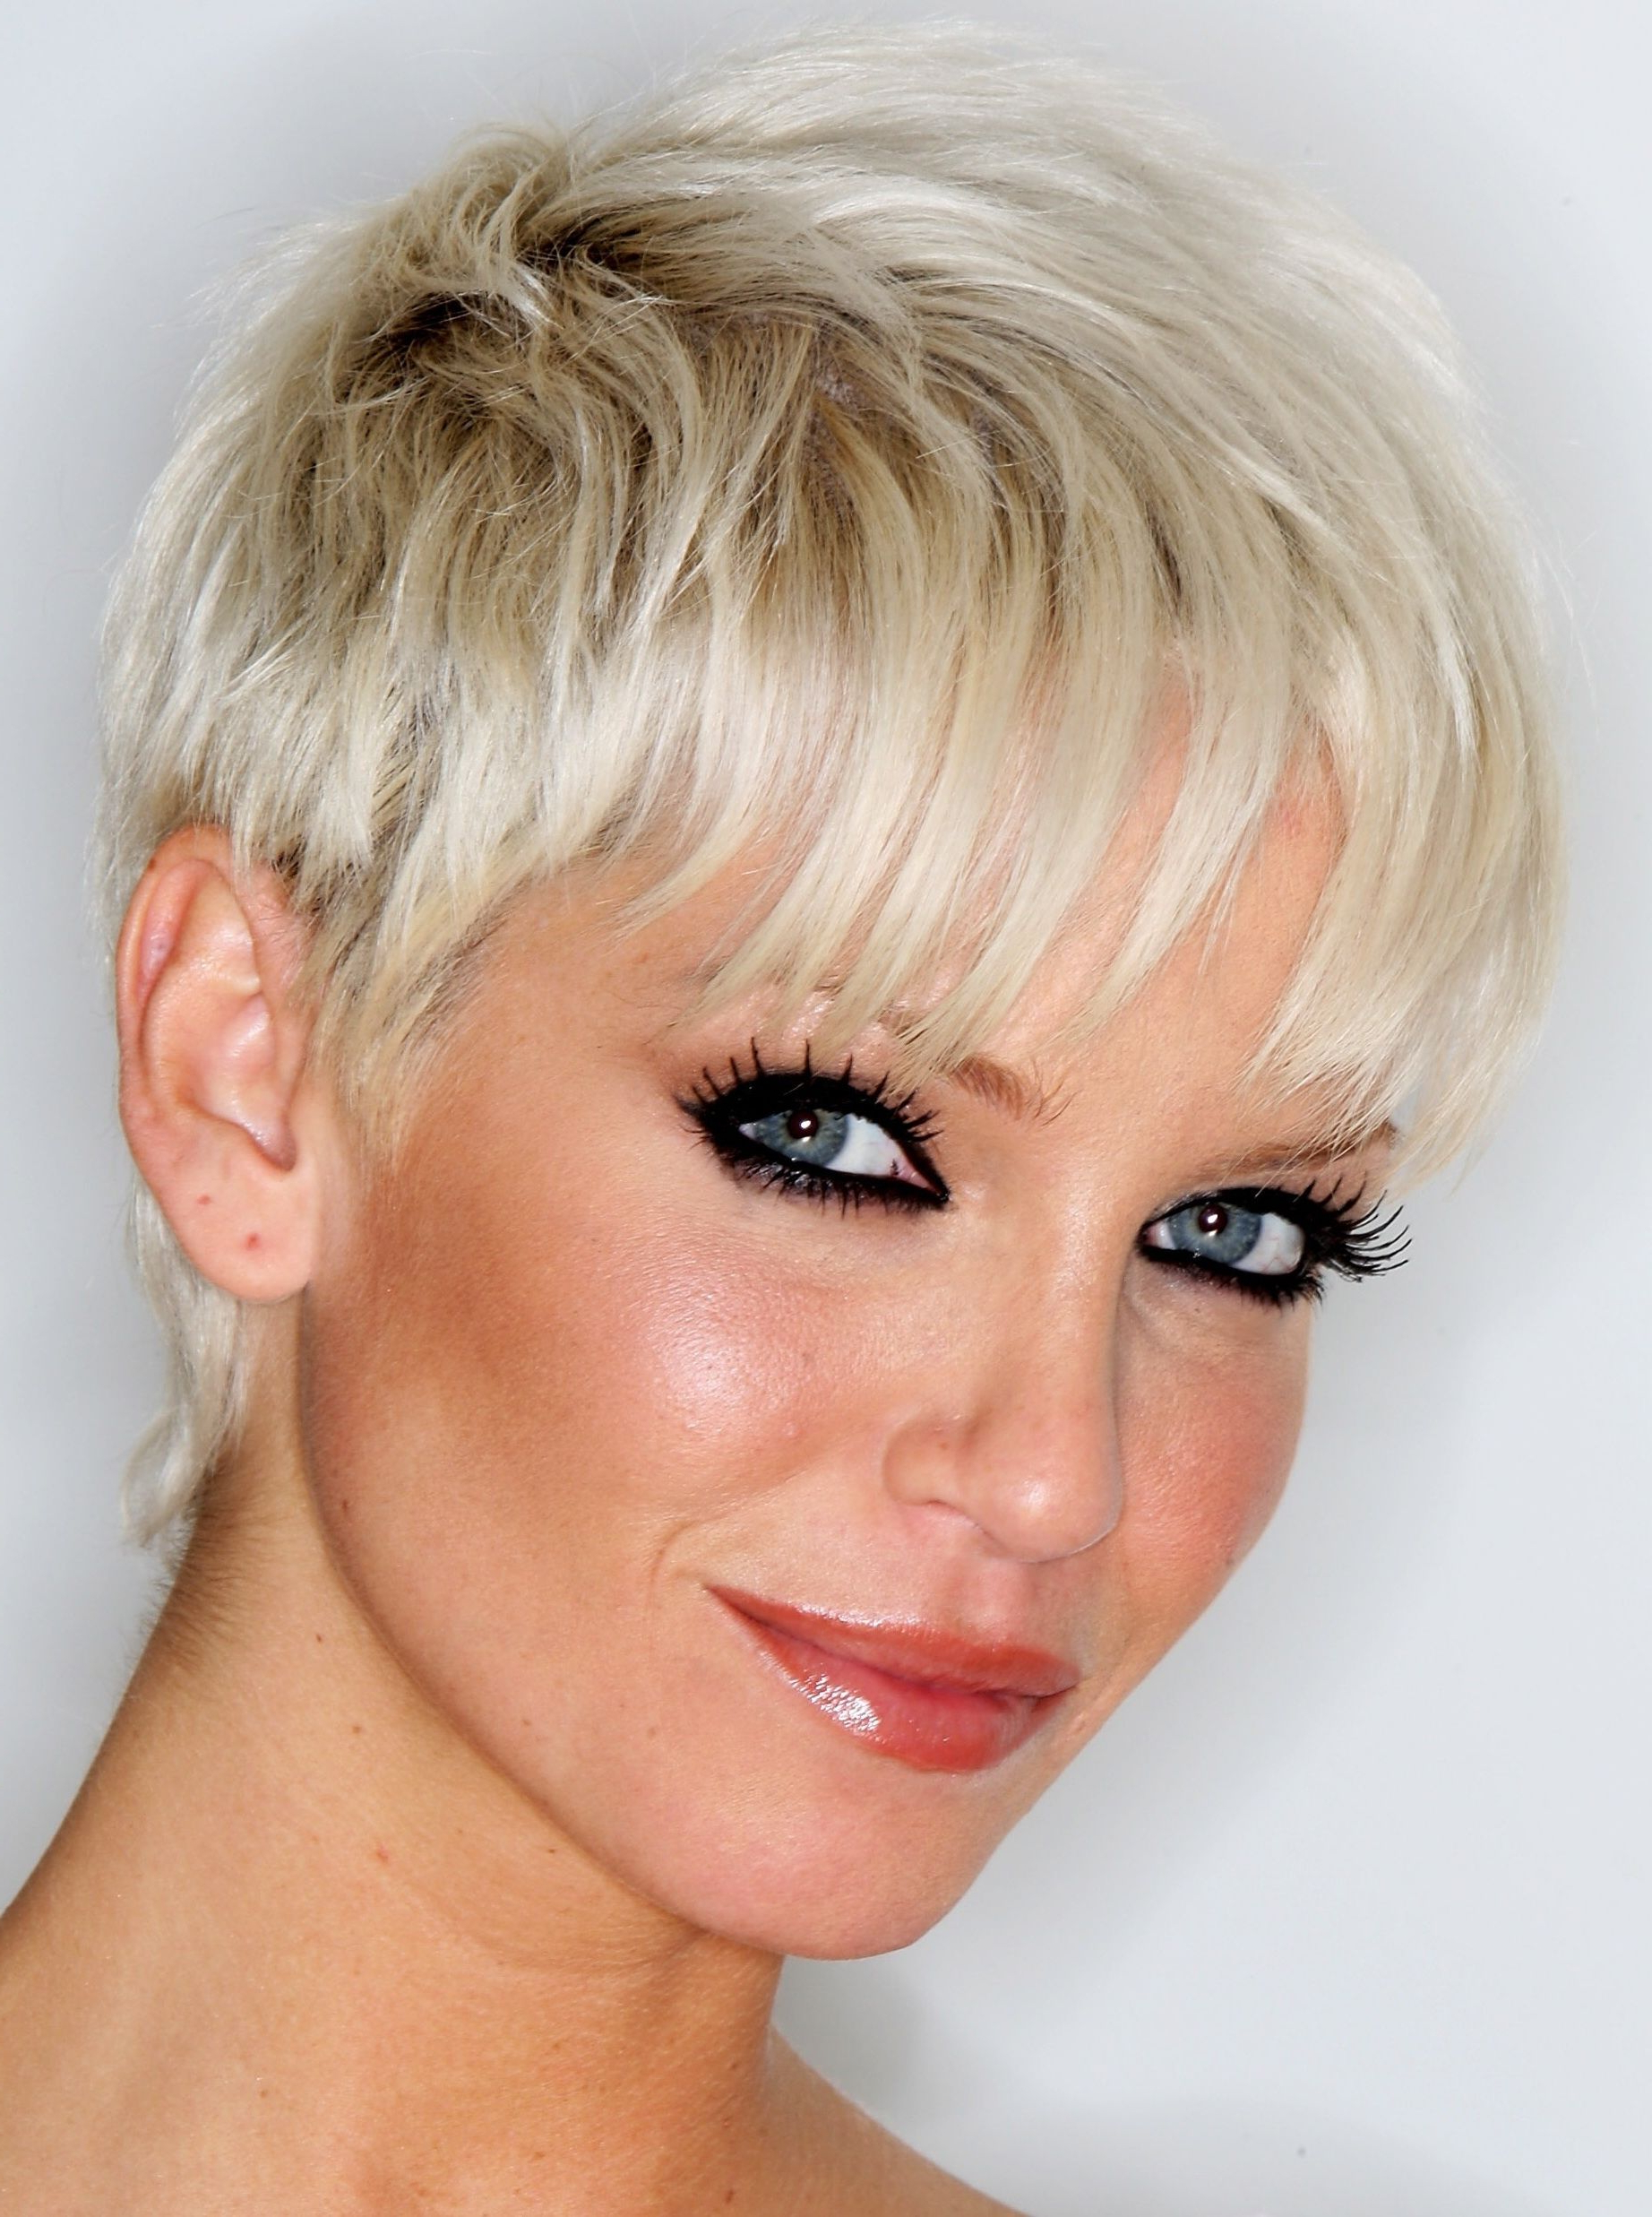 Rock The Best Hairstyle For Your Body Type | Beauty & Fashion Inside Short Haircuts For Tall Women (View 19 of 25)